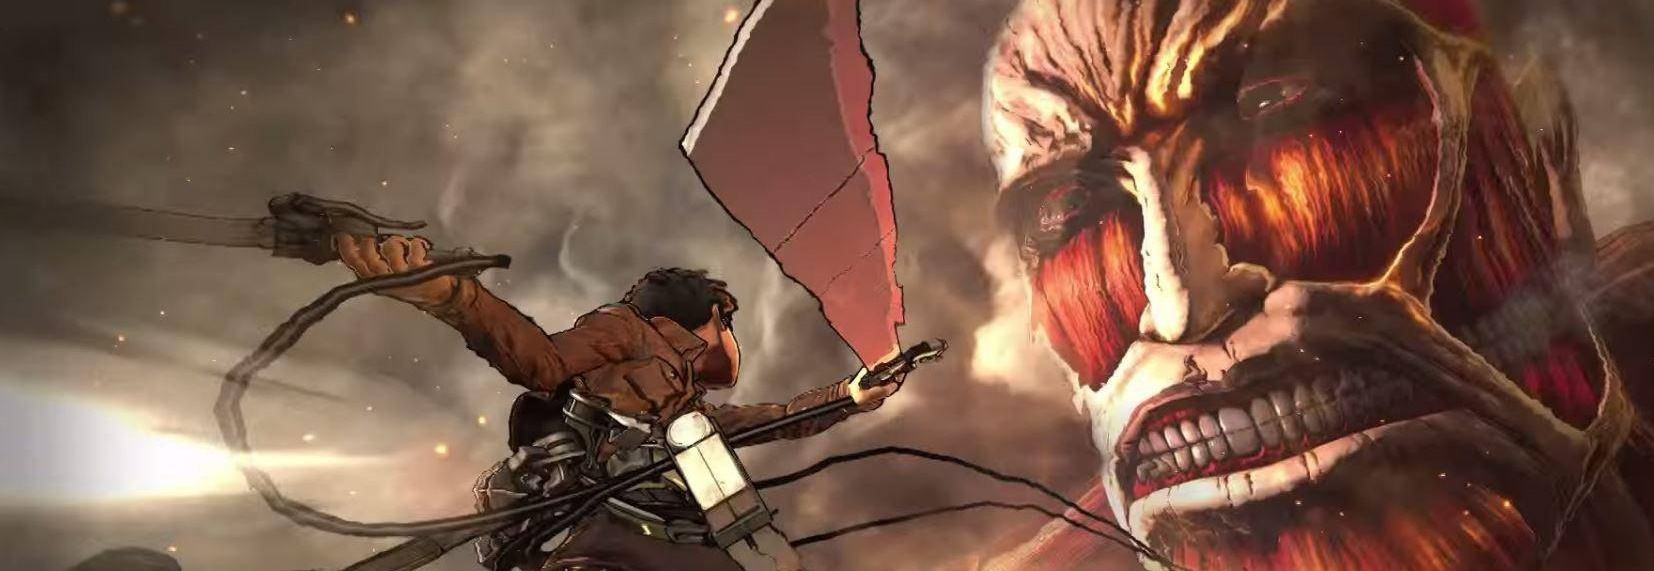 attack-on-titan-aot-wixugr.jpg